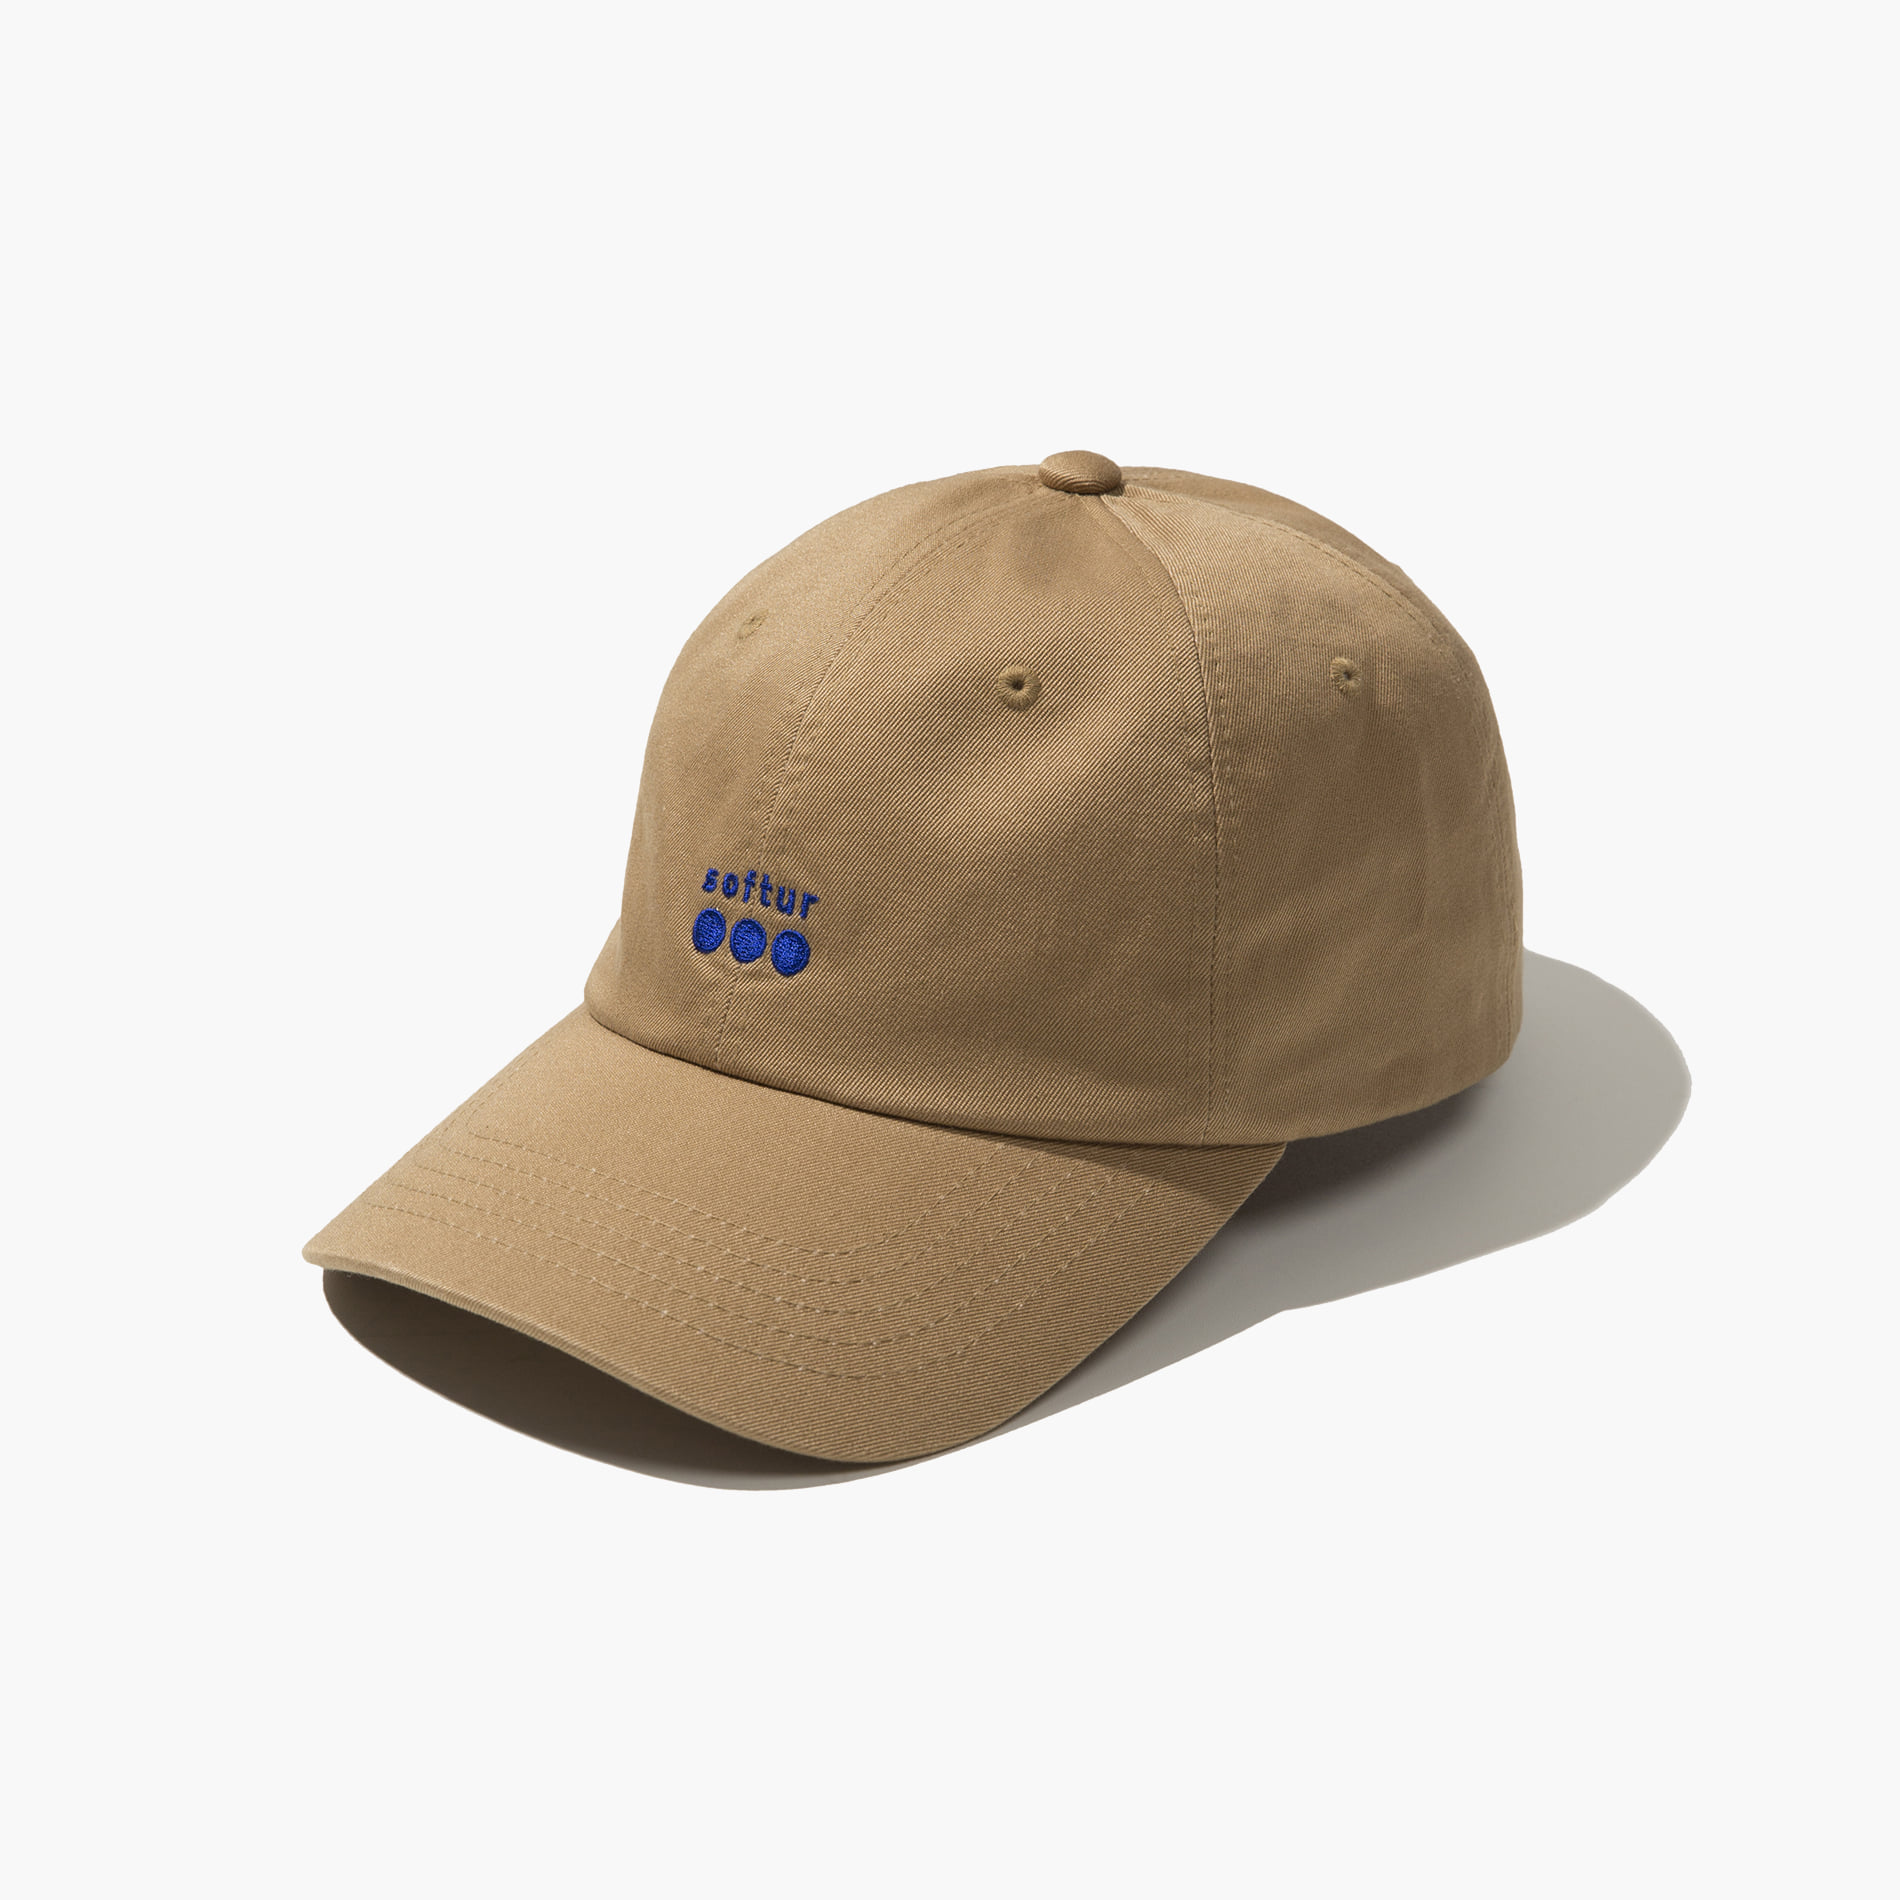 SOFTUR BALL CAP (BEIGE)